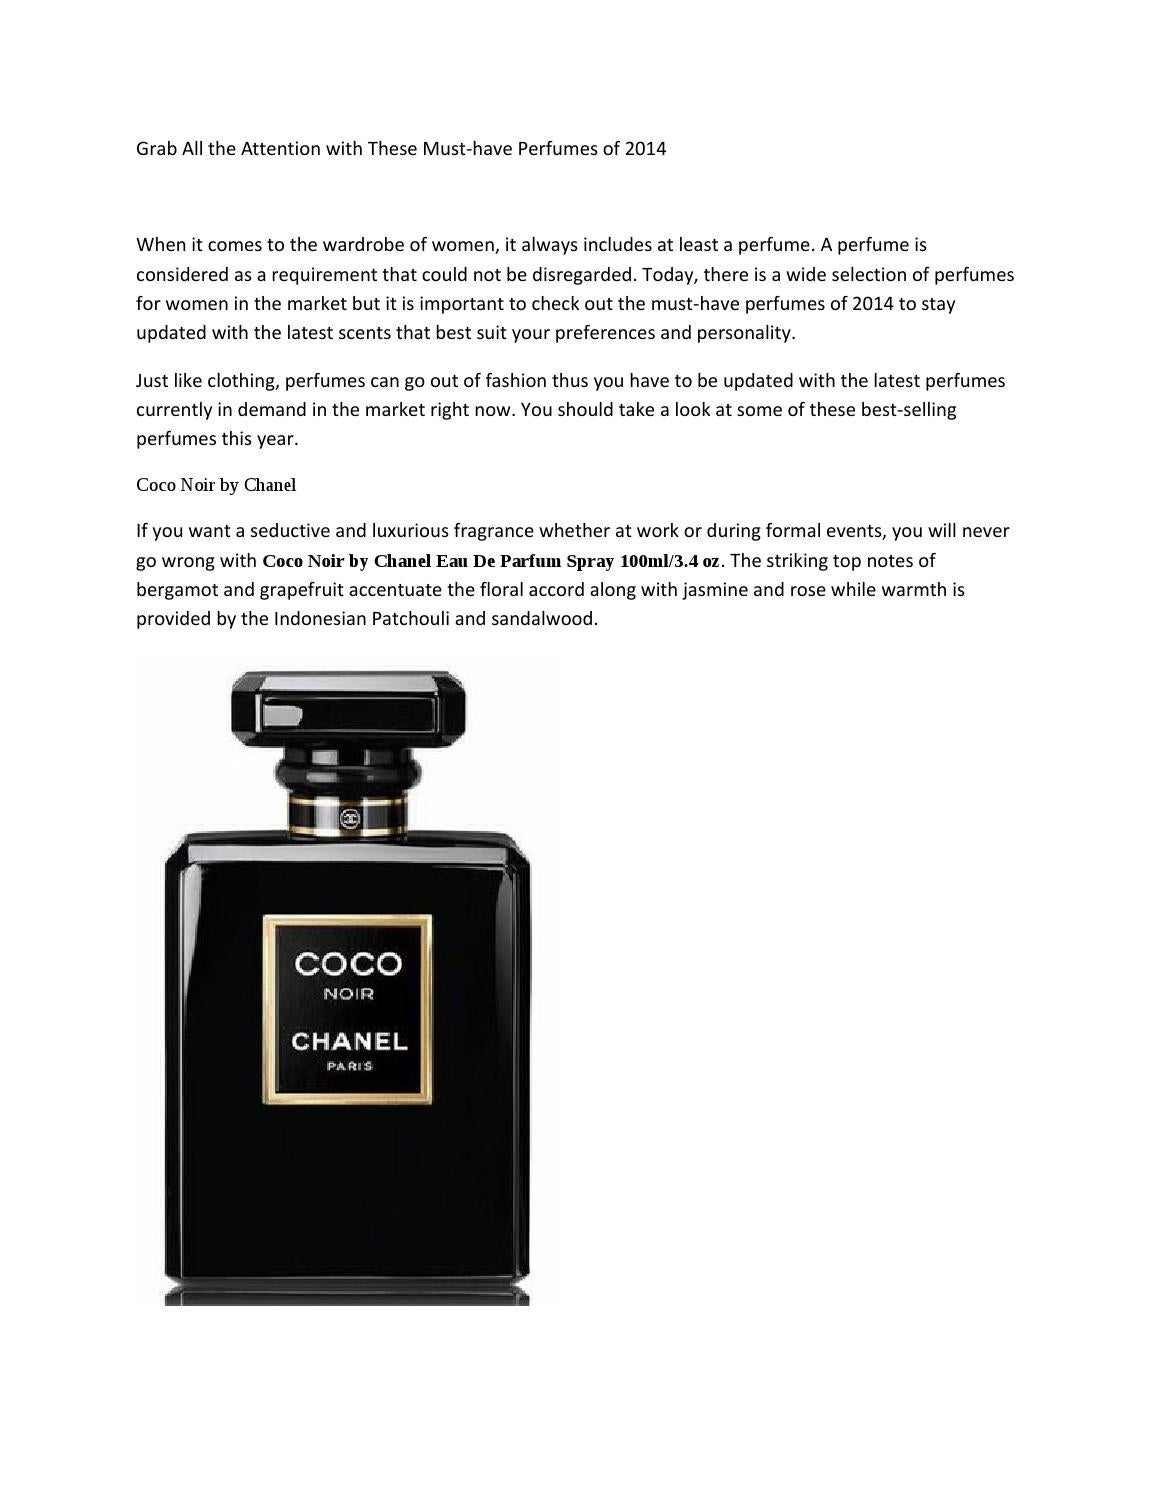 Must have perfumes for women